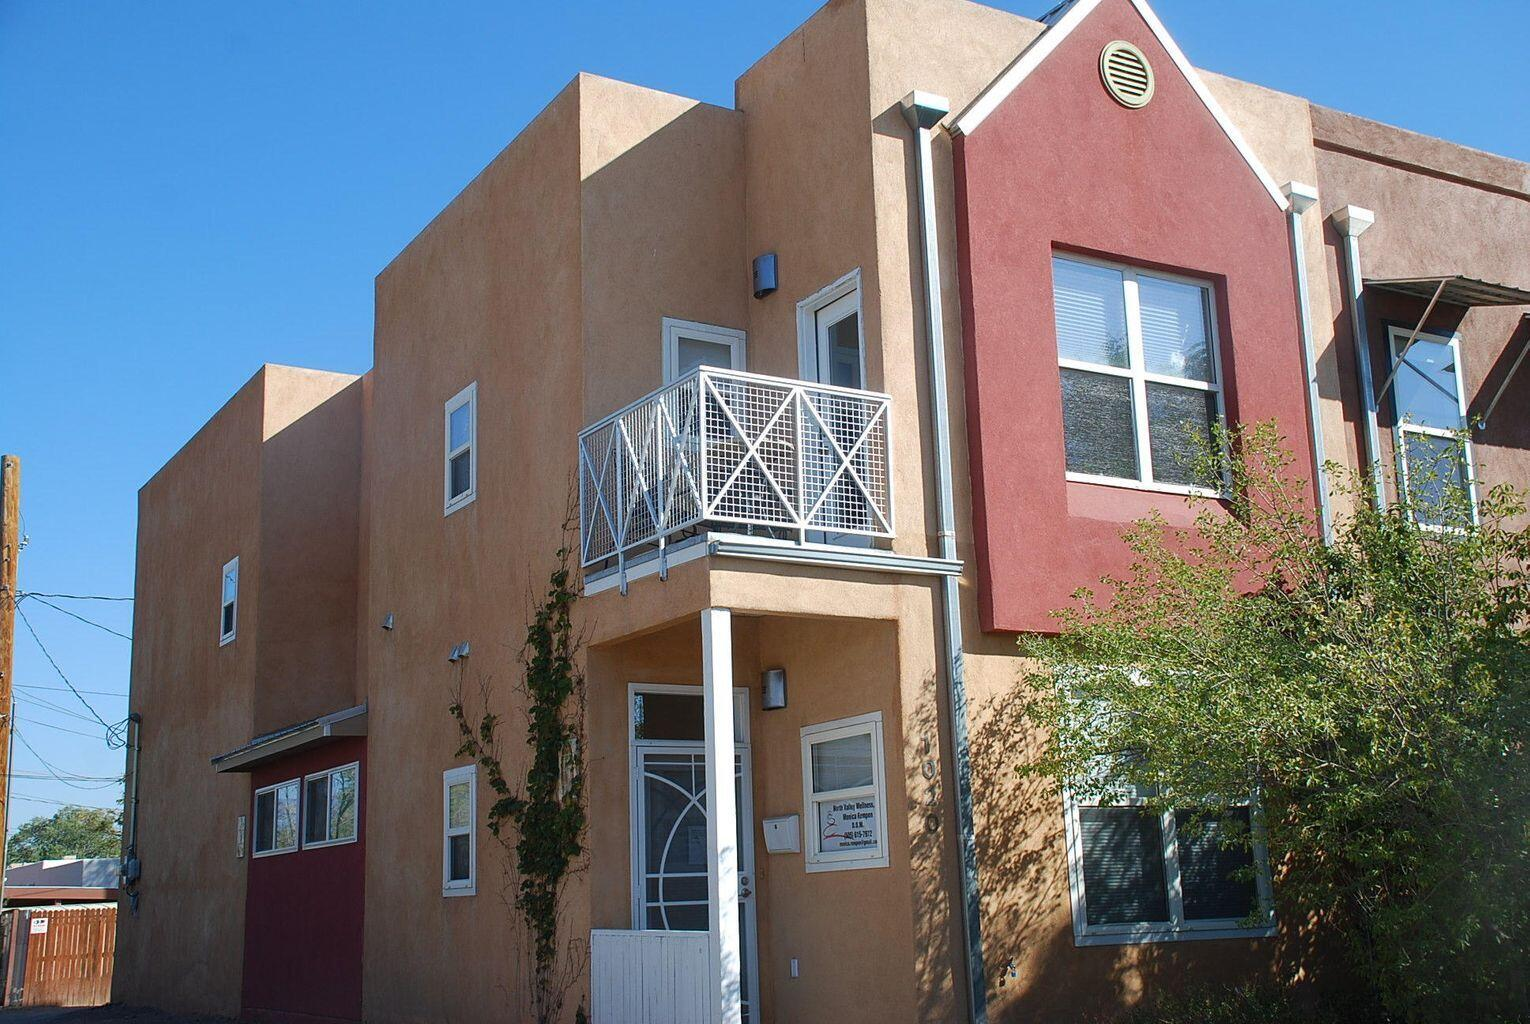 Priced below Appraisal! Fantastic reverse Floor Plan in this modern, bright, and well kept Townhome in a convenient location close to Downtown, Restaurants, Breweries, cultural attractions. 3 bedrooms, 2 1/2 baths, 1-car garage. Upper floor: Wood floors, Master Bedroom with Mountain views and walk-in closet, Kitchen has bar counter seating 3-4, 2 patios with city and mountain views. Ground floor stained concrete floors, office, 2 bedrooms. The Addition is 109 sf and unheated but can easily be incorporated to the adjacent Bedroom.  All Appliances included, the TV stays too. NO HOA. Zoned MX-L. Perfect home office, clinic, legal.